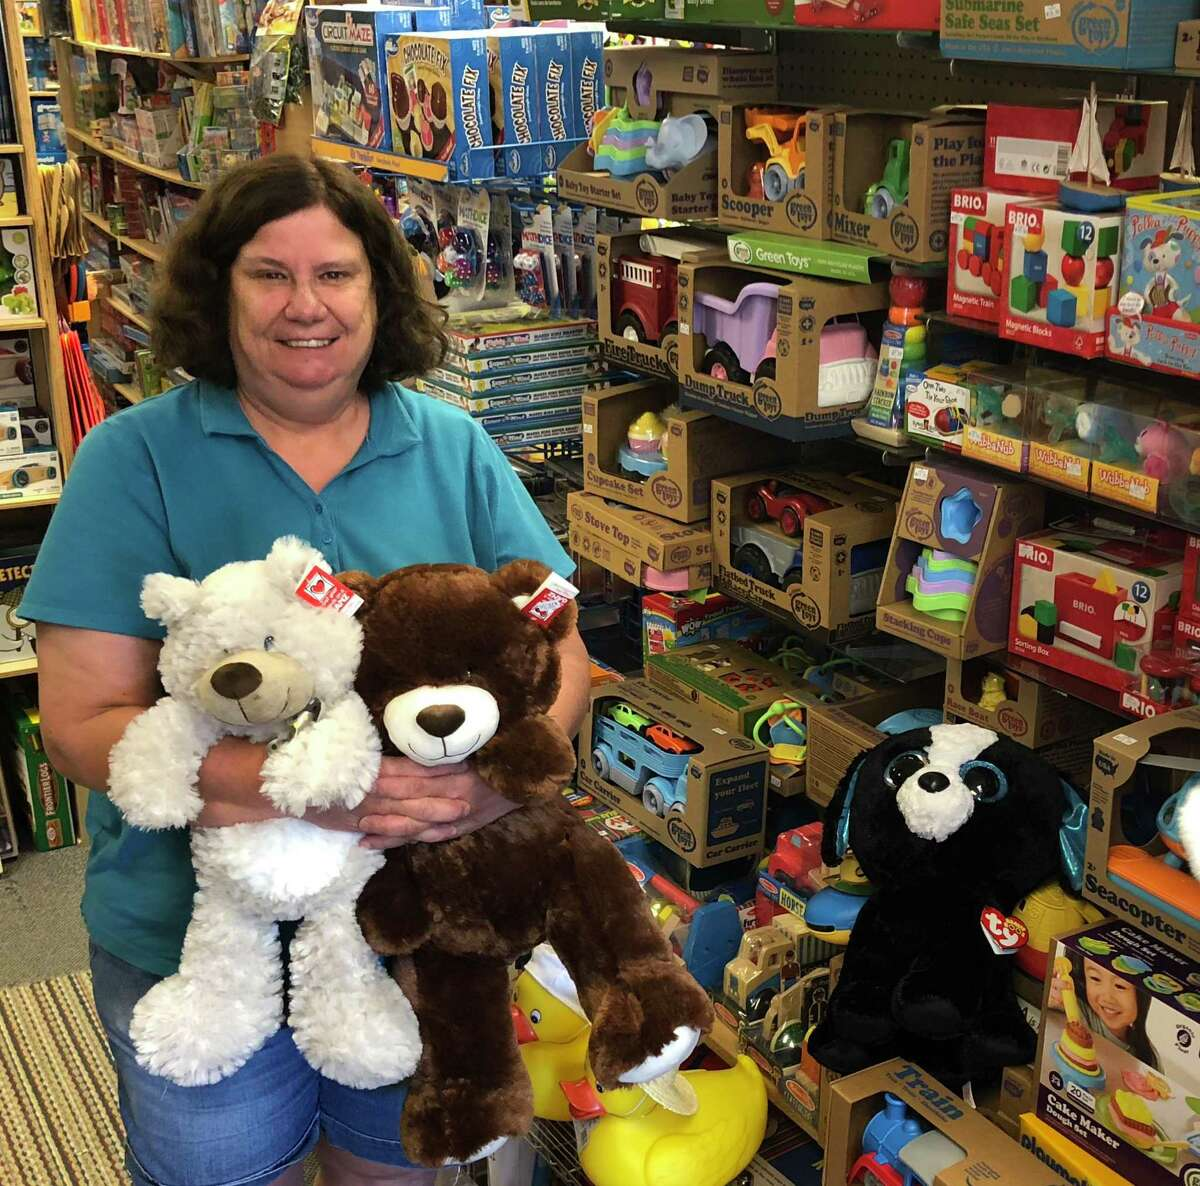 Spectrum/Nordica Toys on Main Street in New Milford has been a staple in town for several decades. The store is celebrating its 40th anniversary.